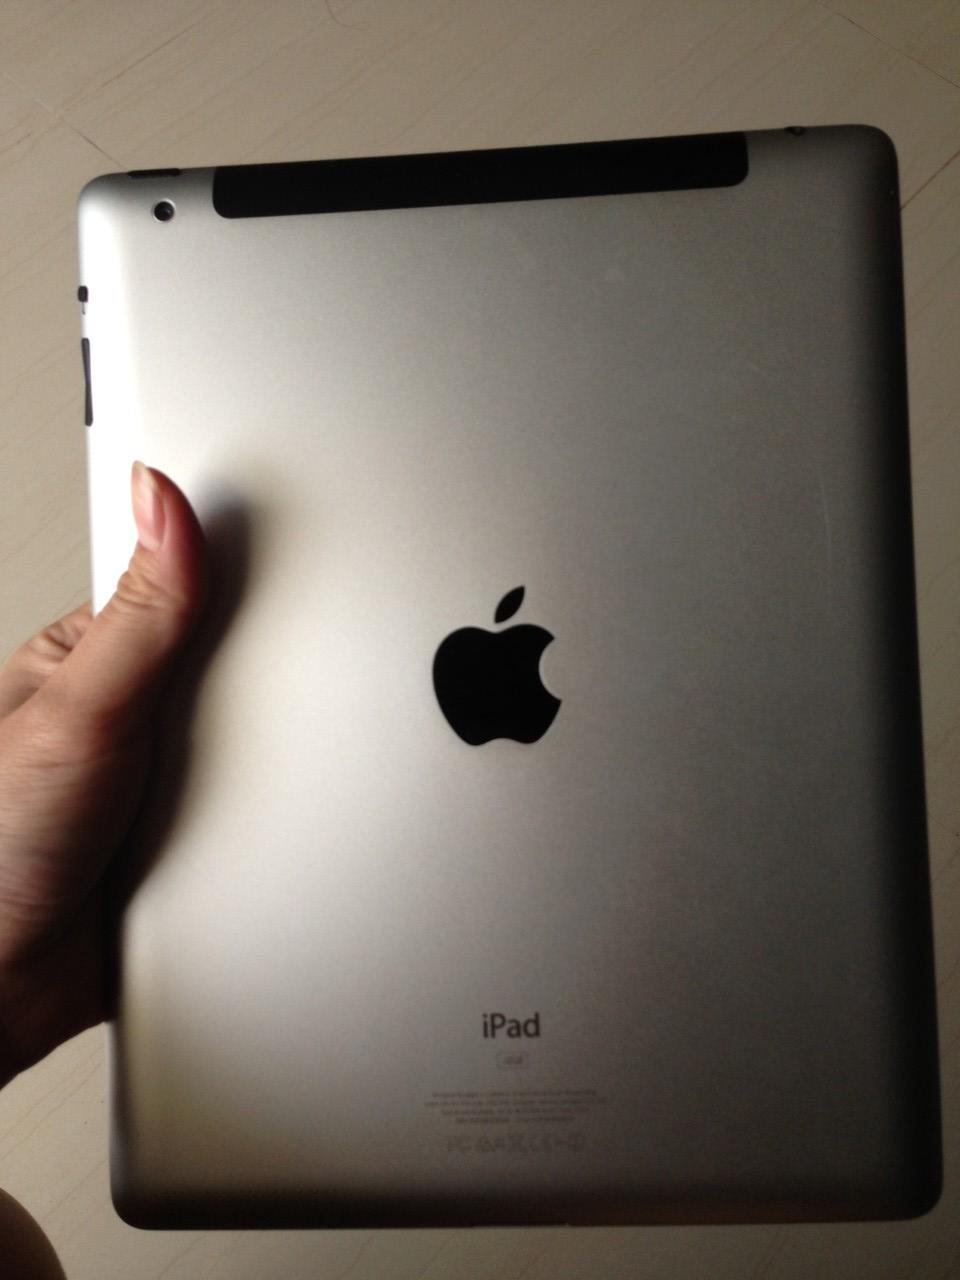 JUAL IPAD 2 32GB WHITE 3G+WIFI